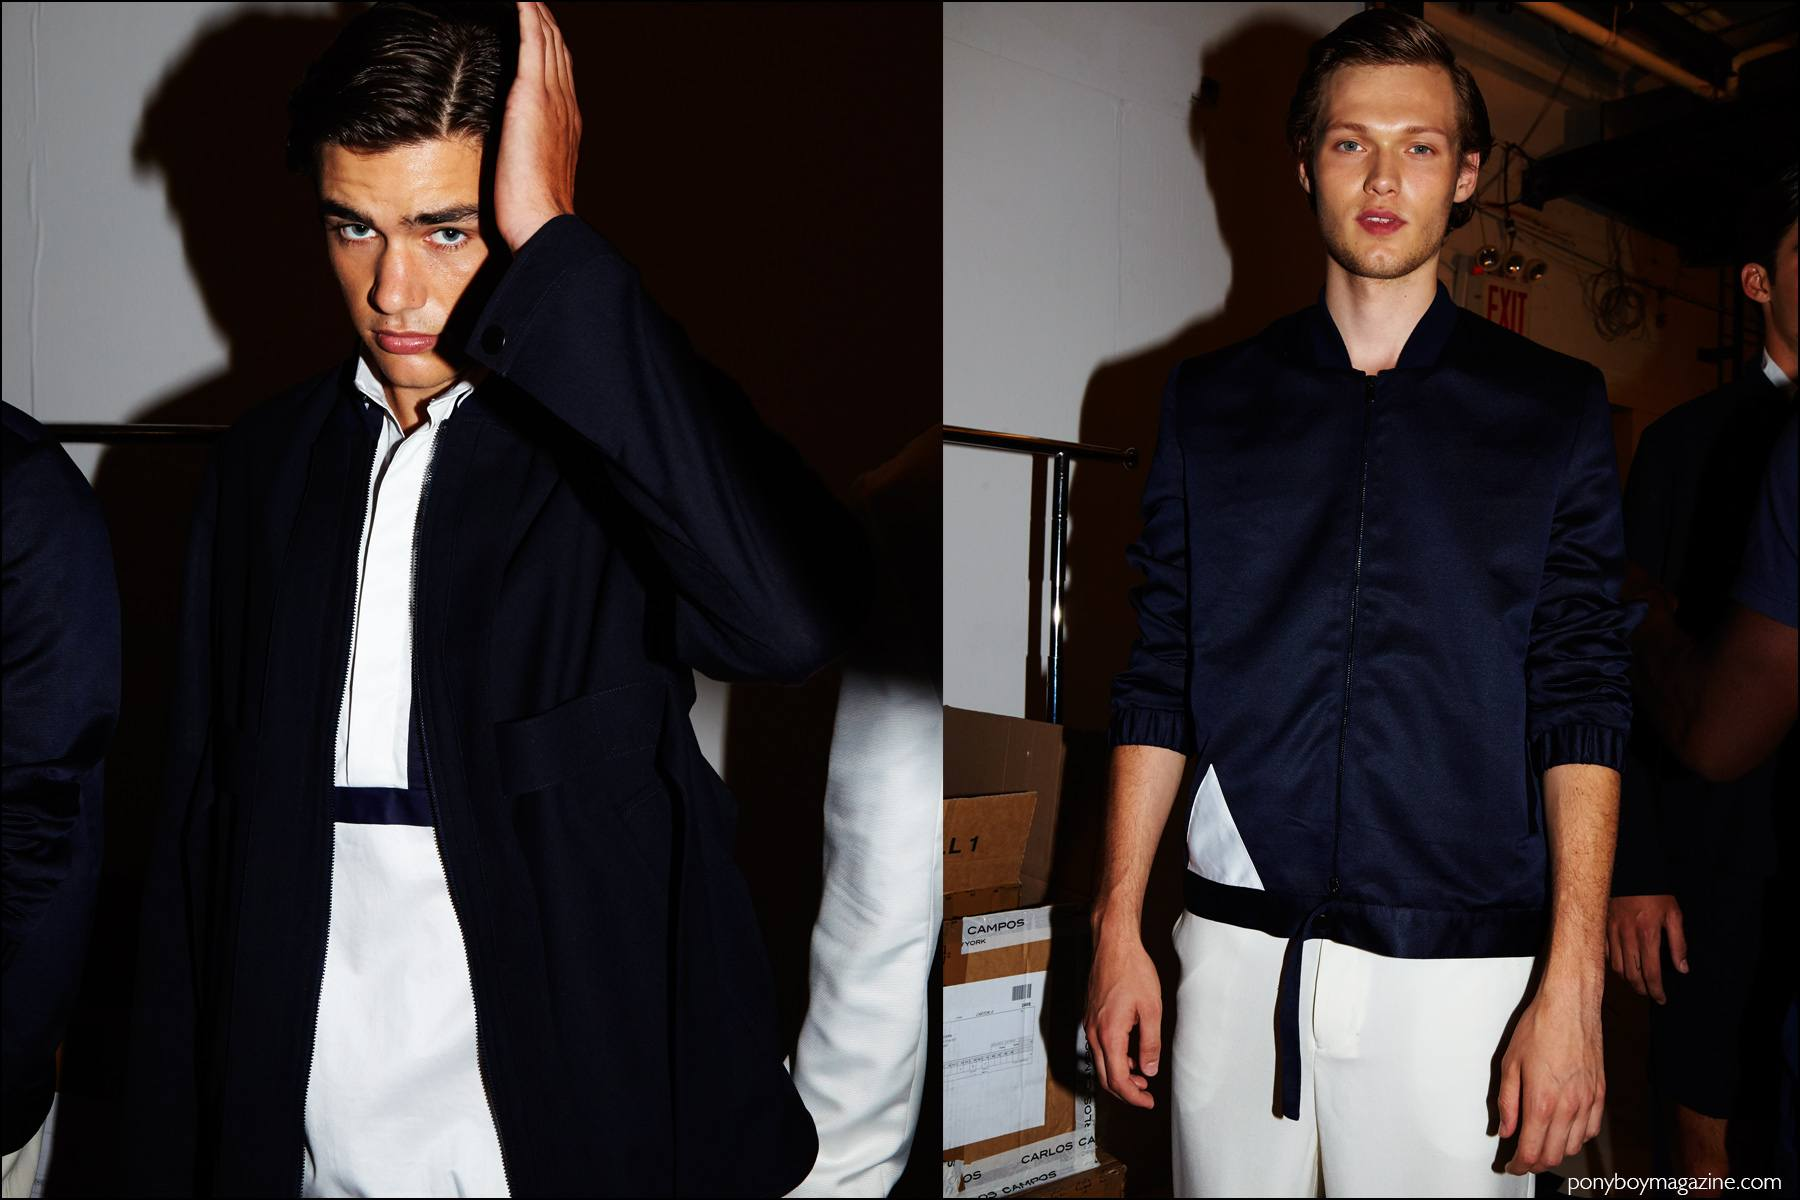 Models in Navy and white clothing, photographed backstage at Carlos Campos Spring/Summer 2017 menswear show. Photography by Alexander Thompson for Ponyboy magazine NY.